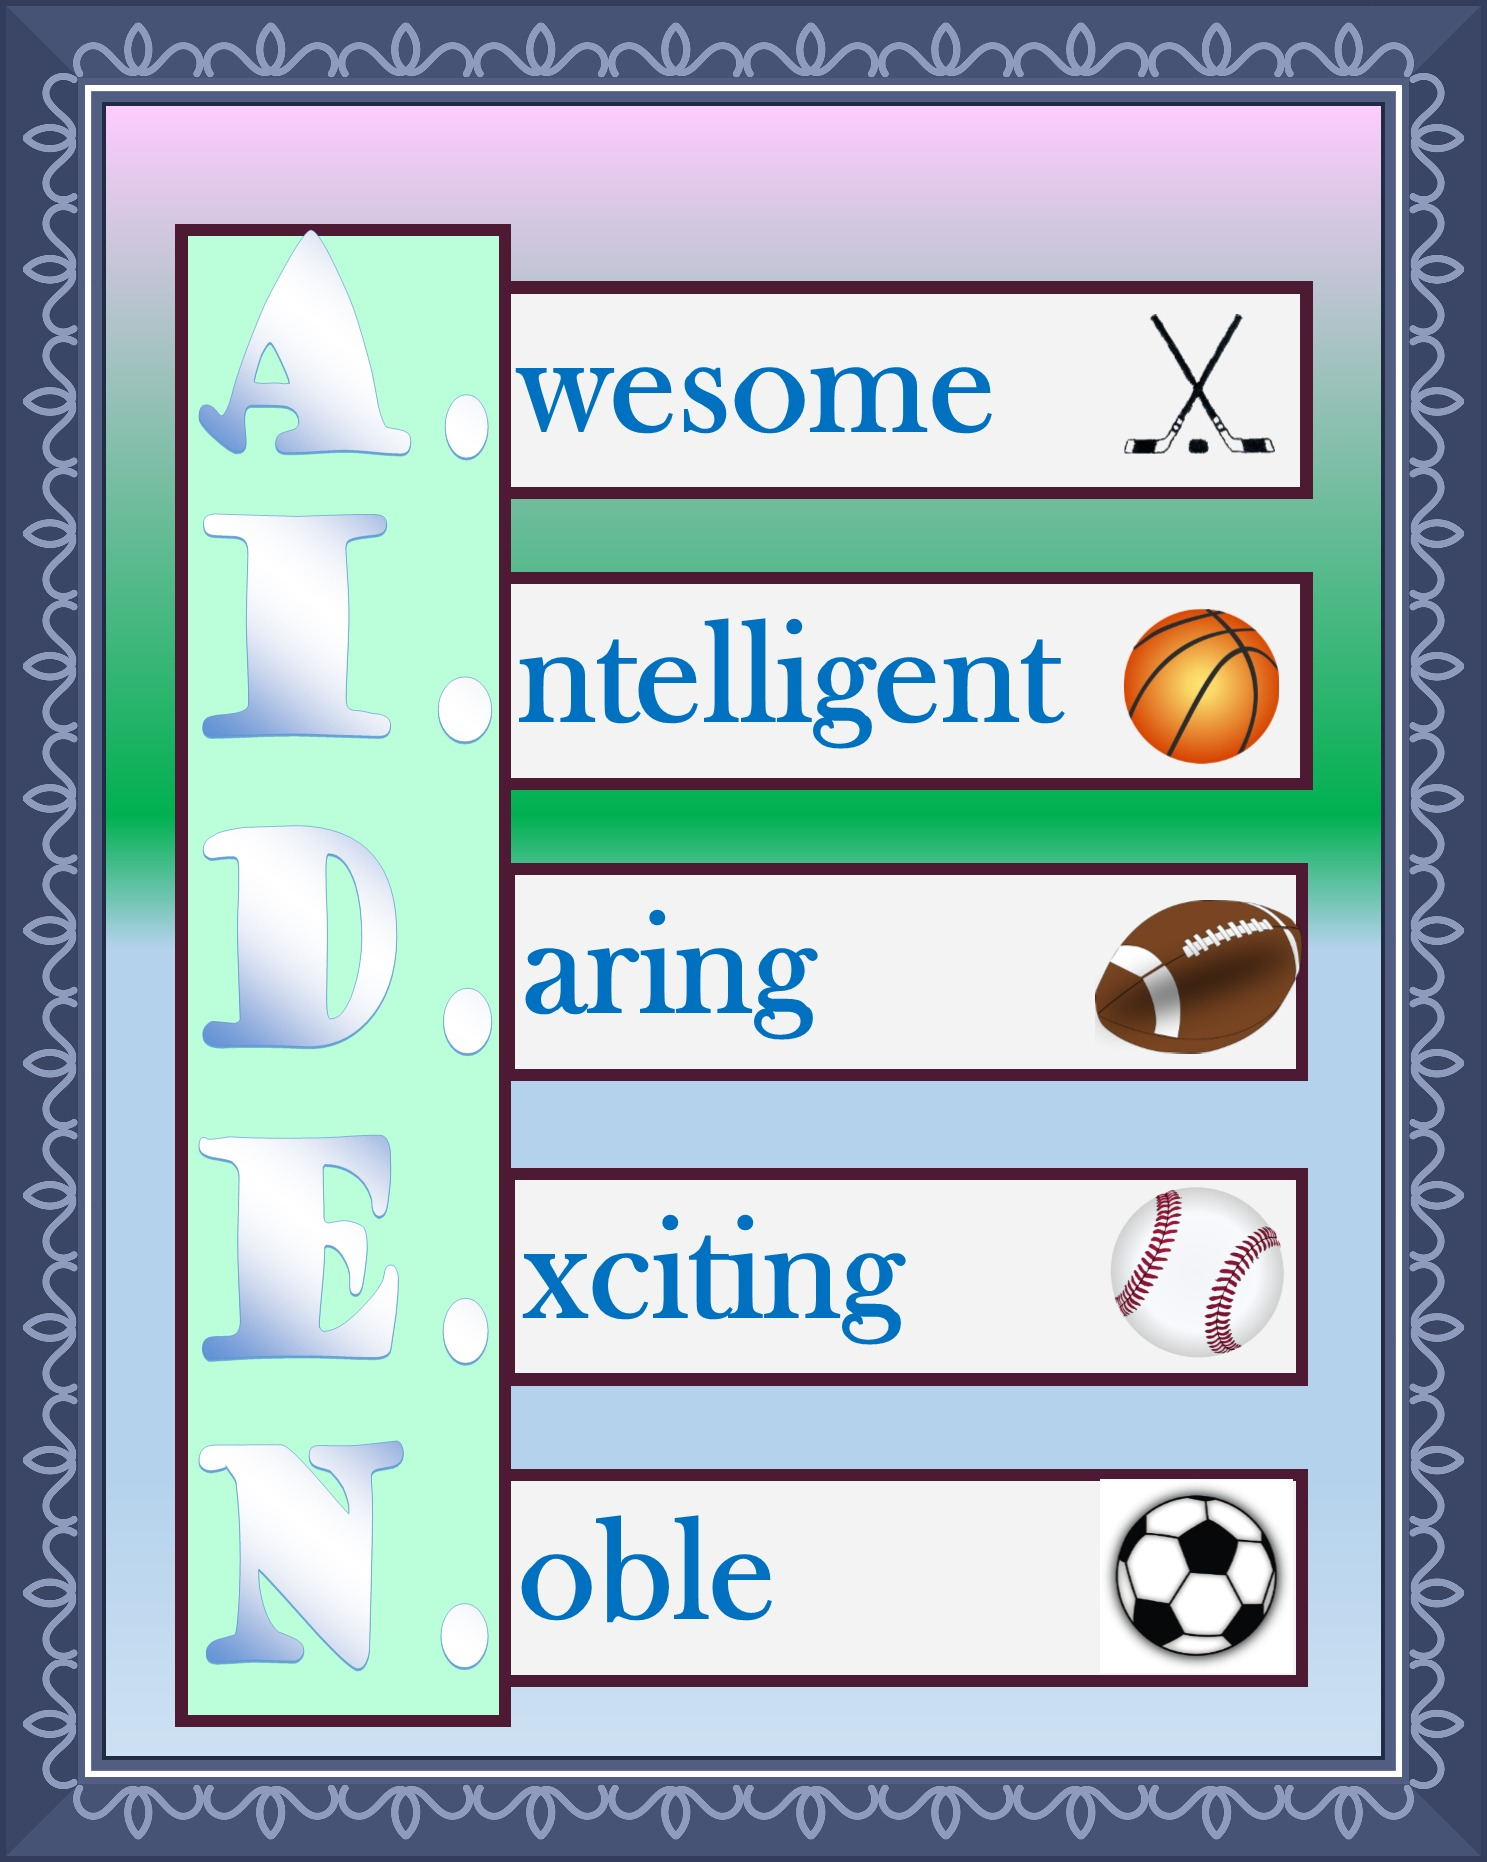 Special Nameplate - Aiden - Printable Downloadable Design